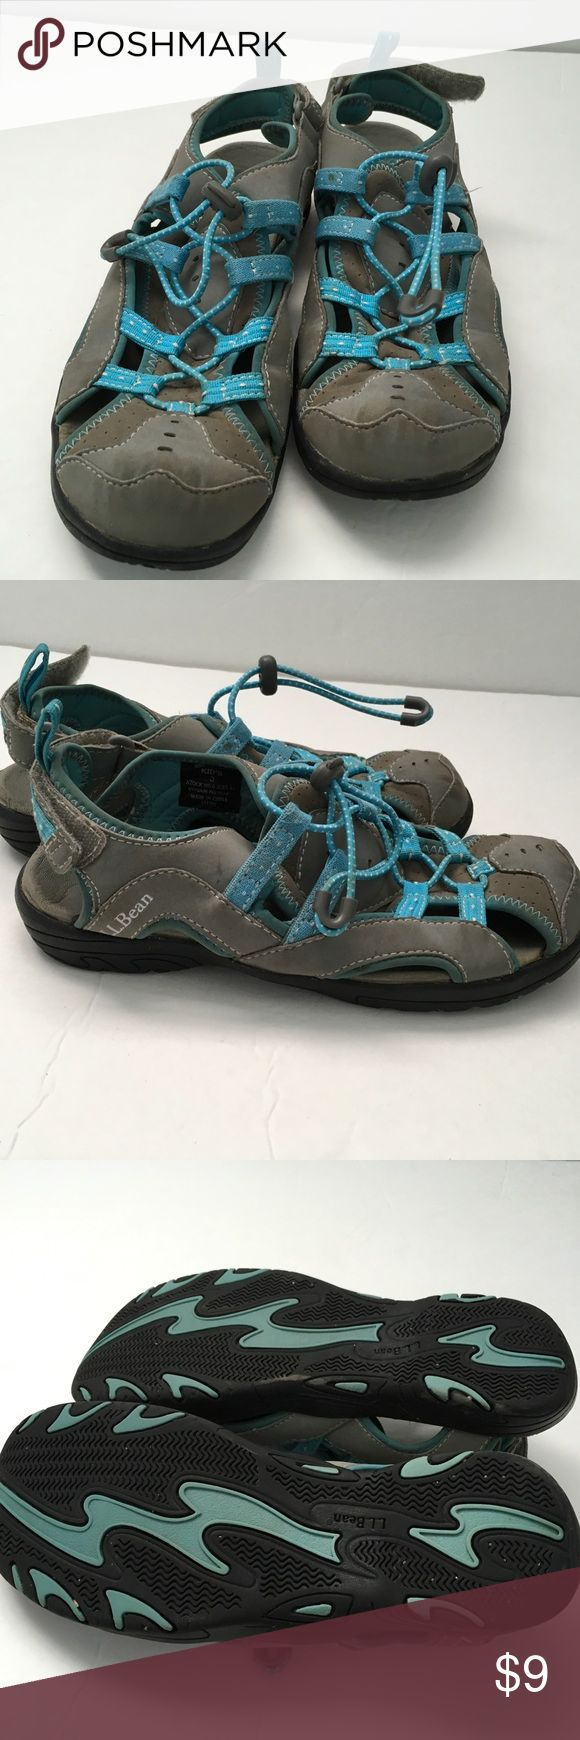 "L.L. Bean kids water shoes size 3 ❤️Condition: excellent used ❤️Brand: L.L. Bean ❤️Size: 3  ❤️Color(s): Blue and gray ❤️Materials: man-made materials ❤️Measurements:      Total length  10"" ❤️Notes: 💕💕Bundle and save!!!!💕💕 💕💕All reasonable offers are considered!!!!!💕💕 L.L. Bean Shoes Water Shoes"